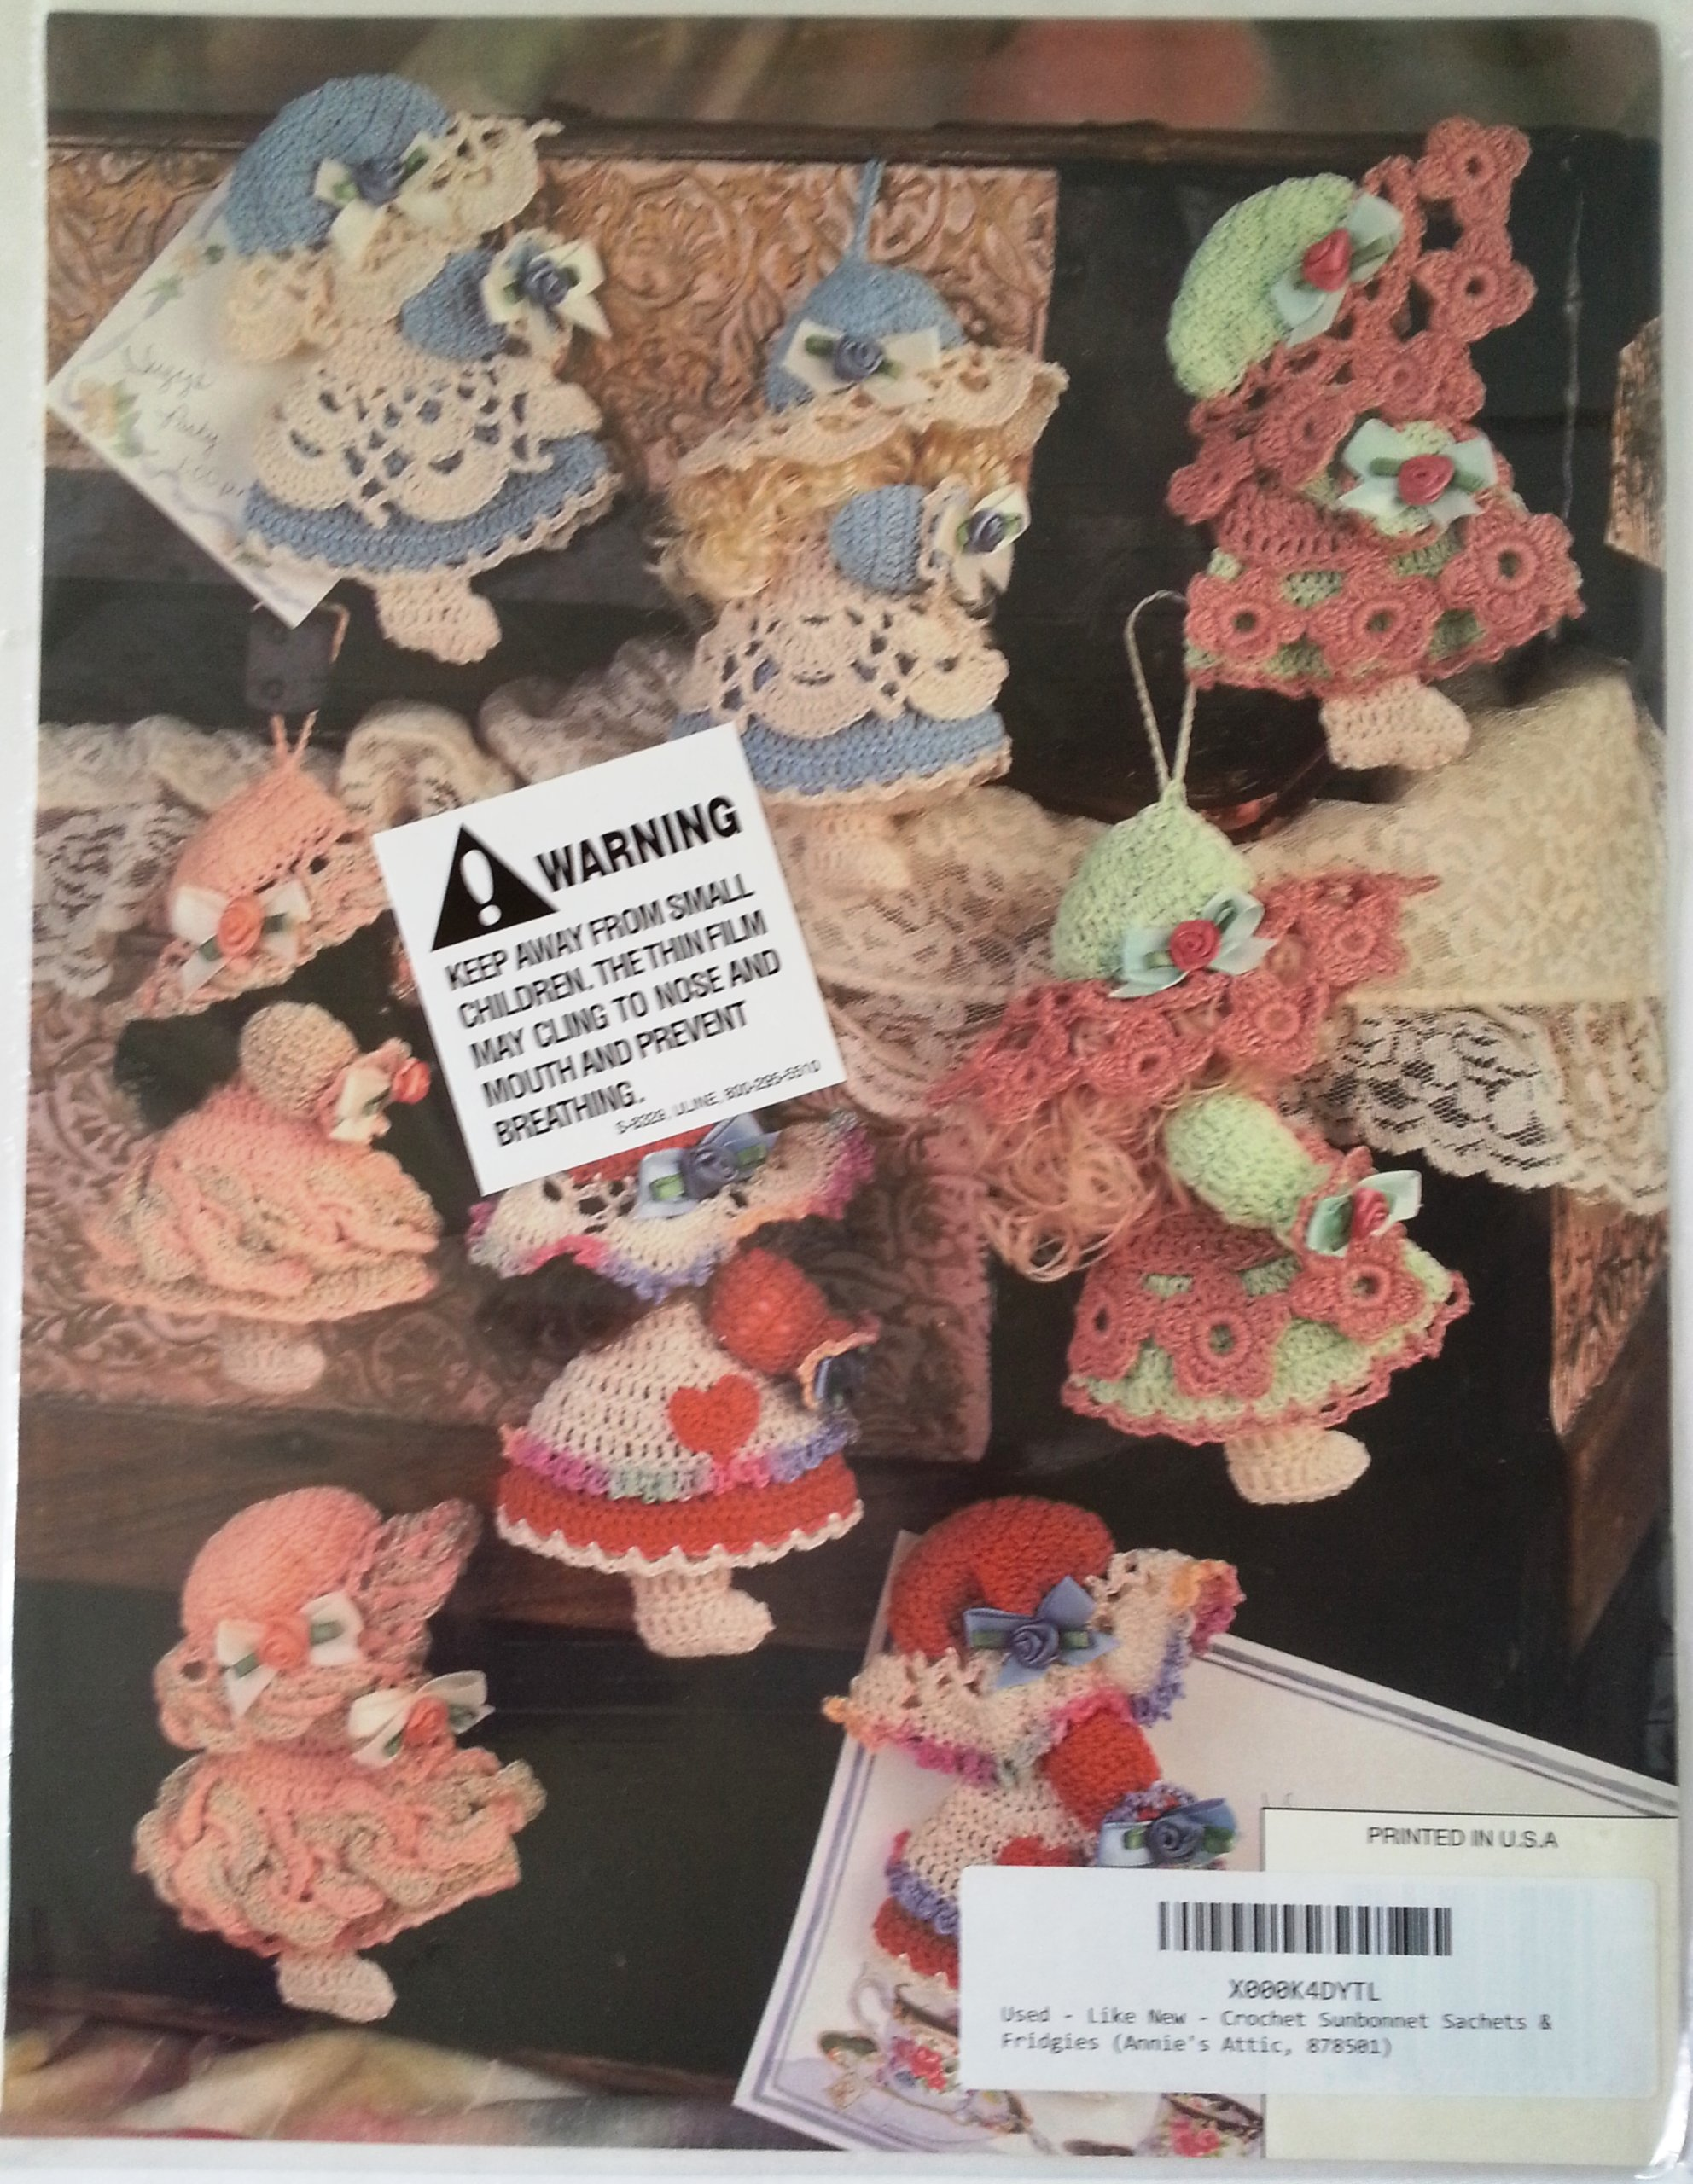 Crocheted Fridg-ees Stitching Craft Book